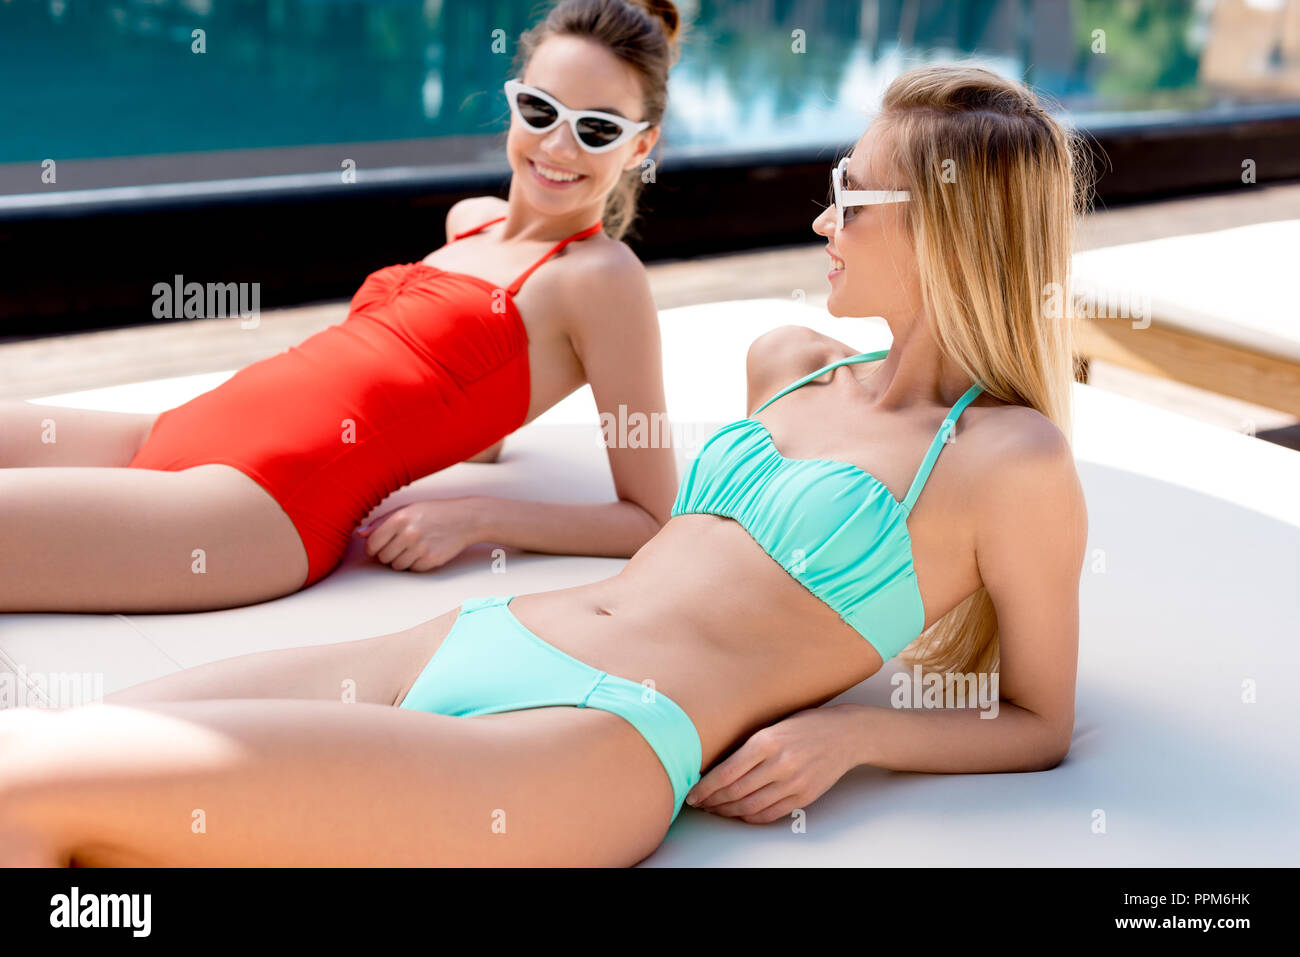 smiling young women relaxing on sun lounger at poolside and looking at each other - Stock Image